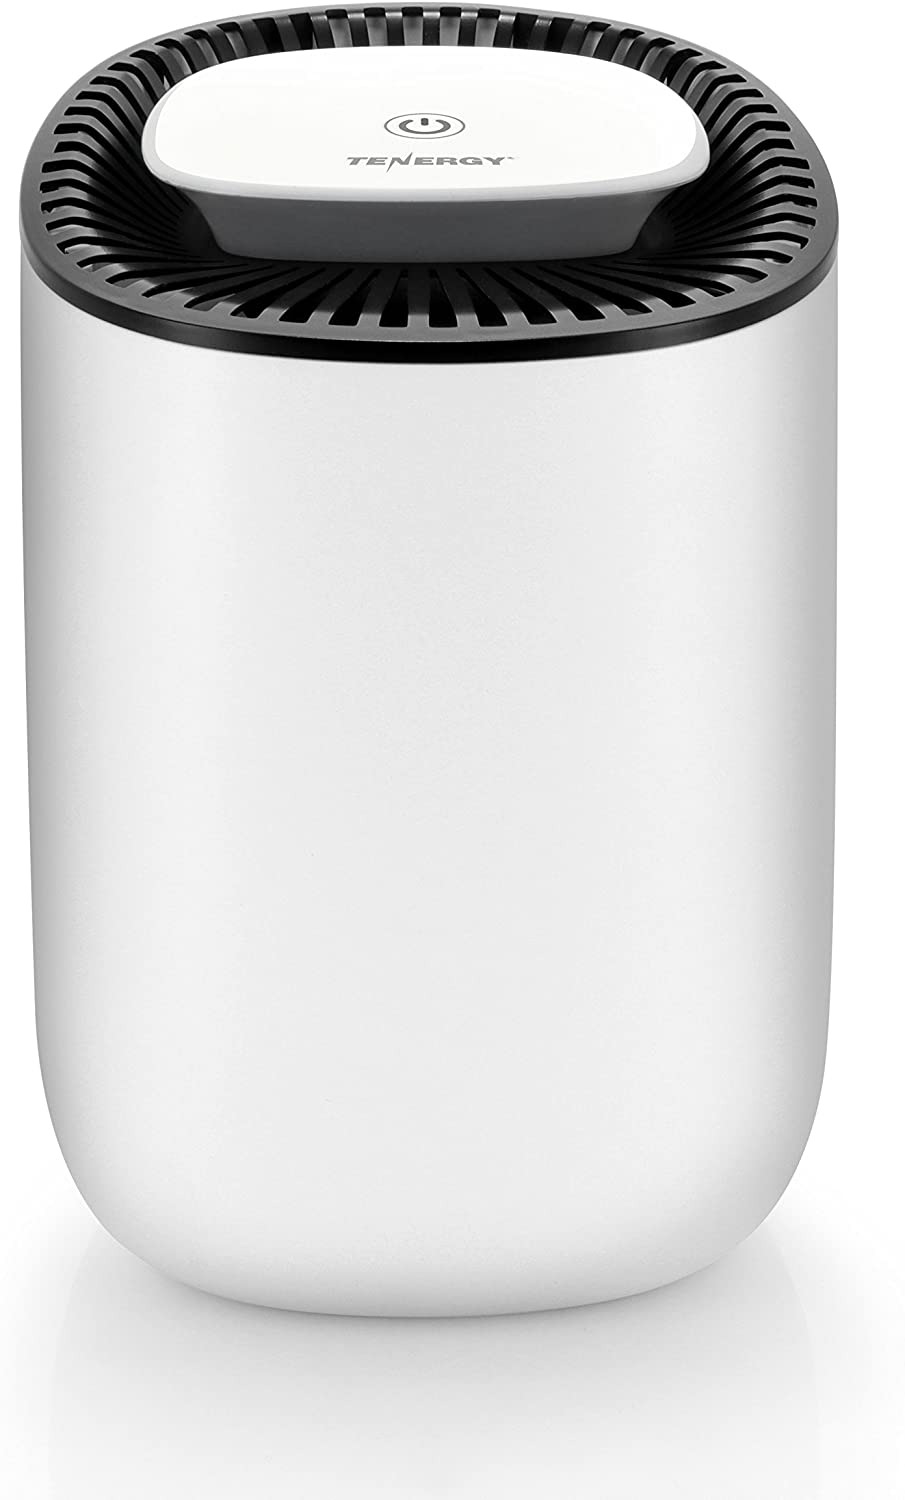 Food Dehydrator Bed Bath and Beyond Beautiful Tenergy sorbi Mini Dehumidifier Auto Shut F Ultra Quiet Small Dehumidifier with Led Indicator Portable Dehumidifier for Bathroom Small Spaces